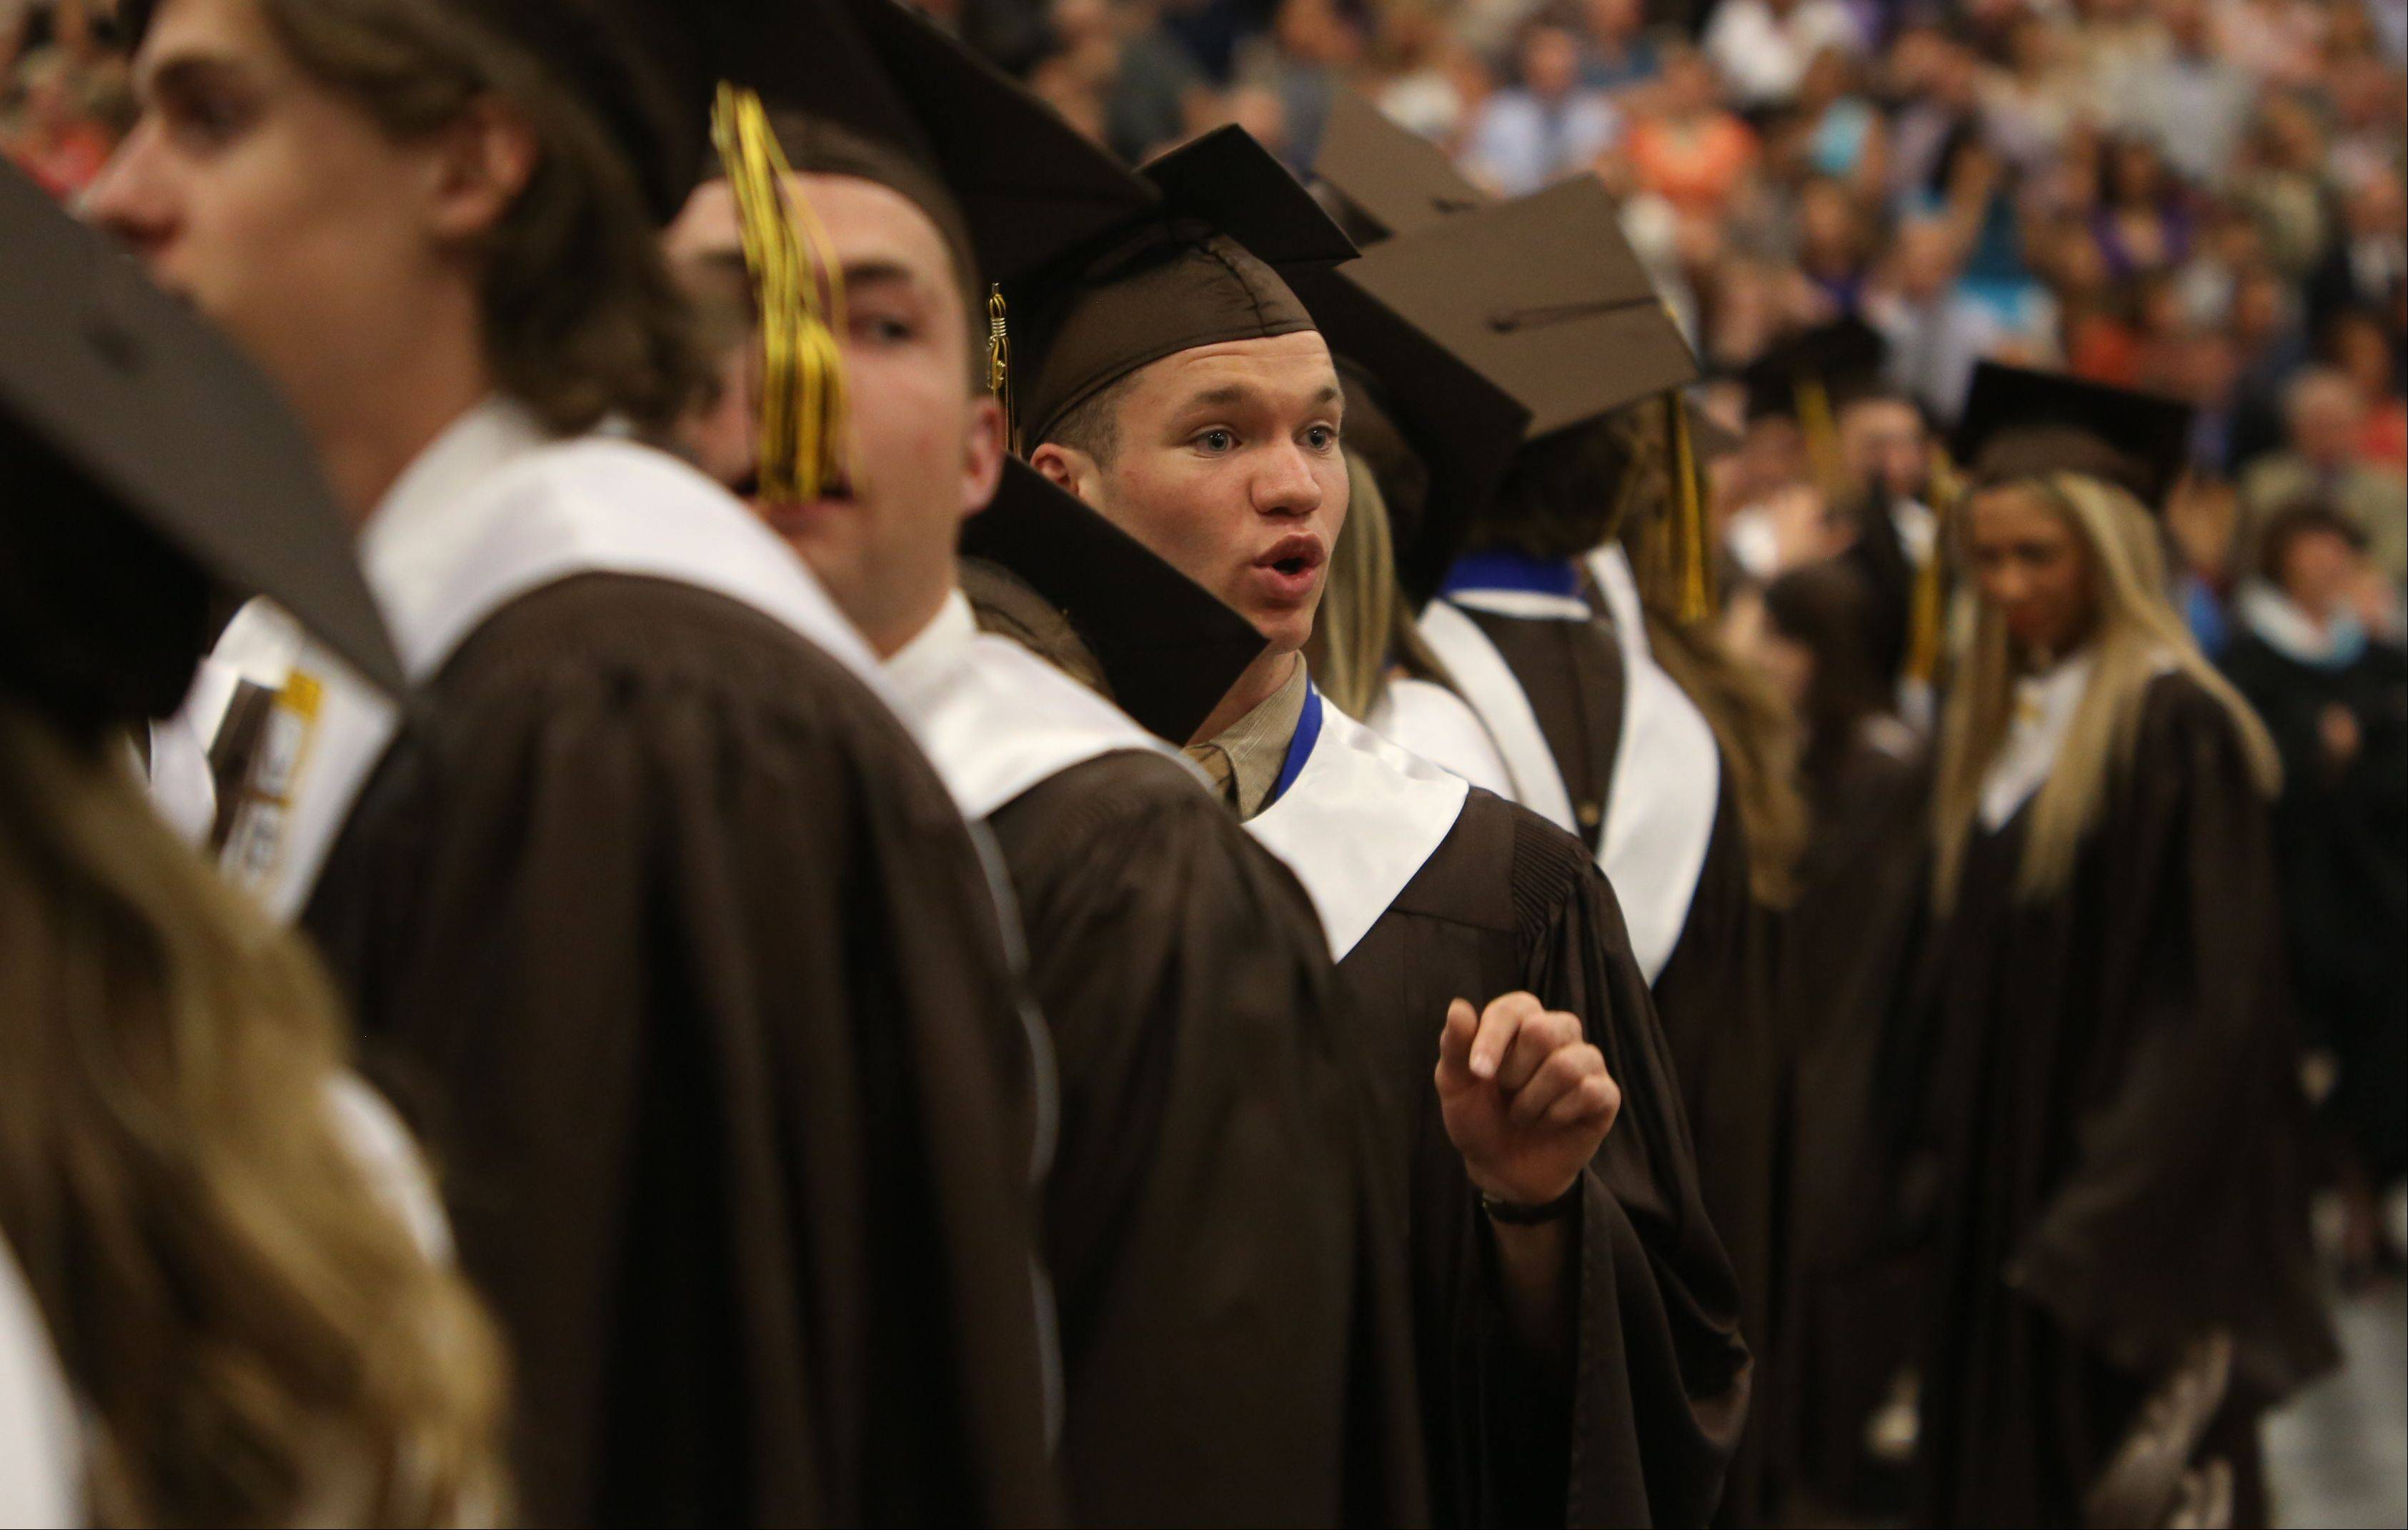 Images from the Carmel Catholic High School graduation on Thursday, May 30 in Mundelein.